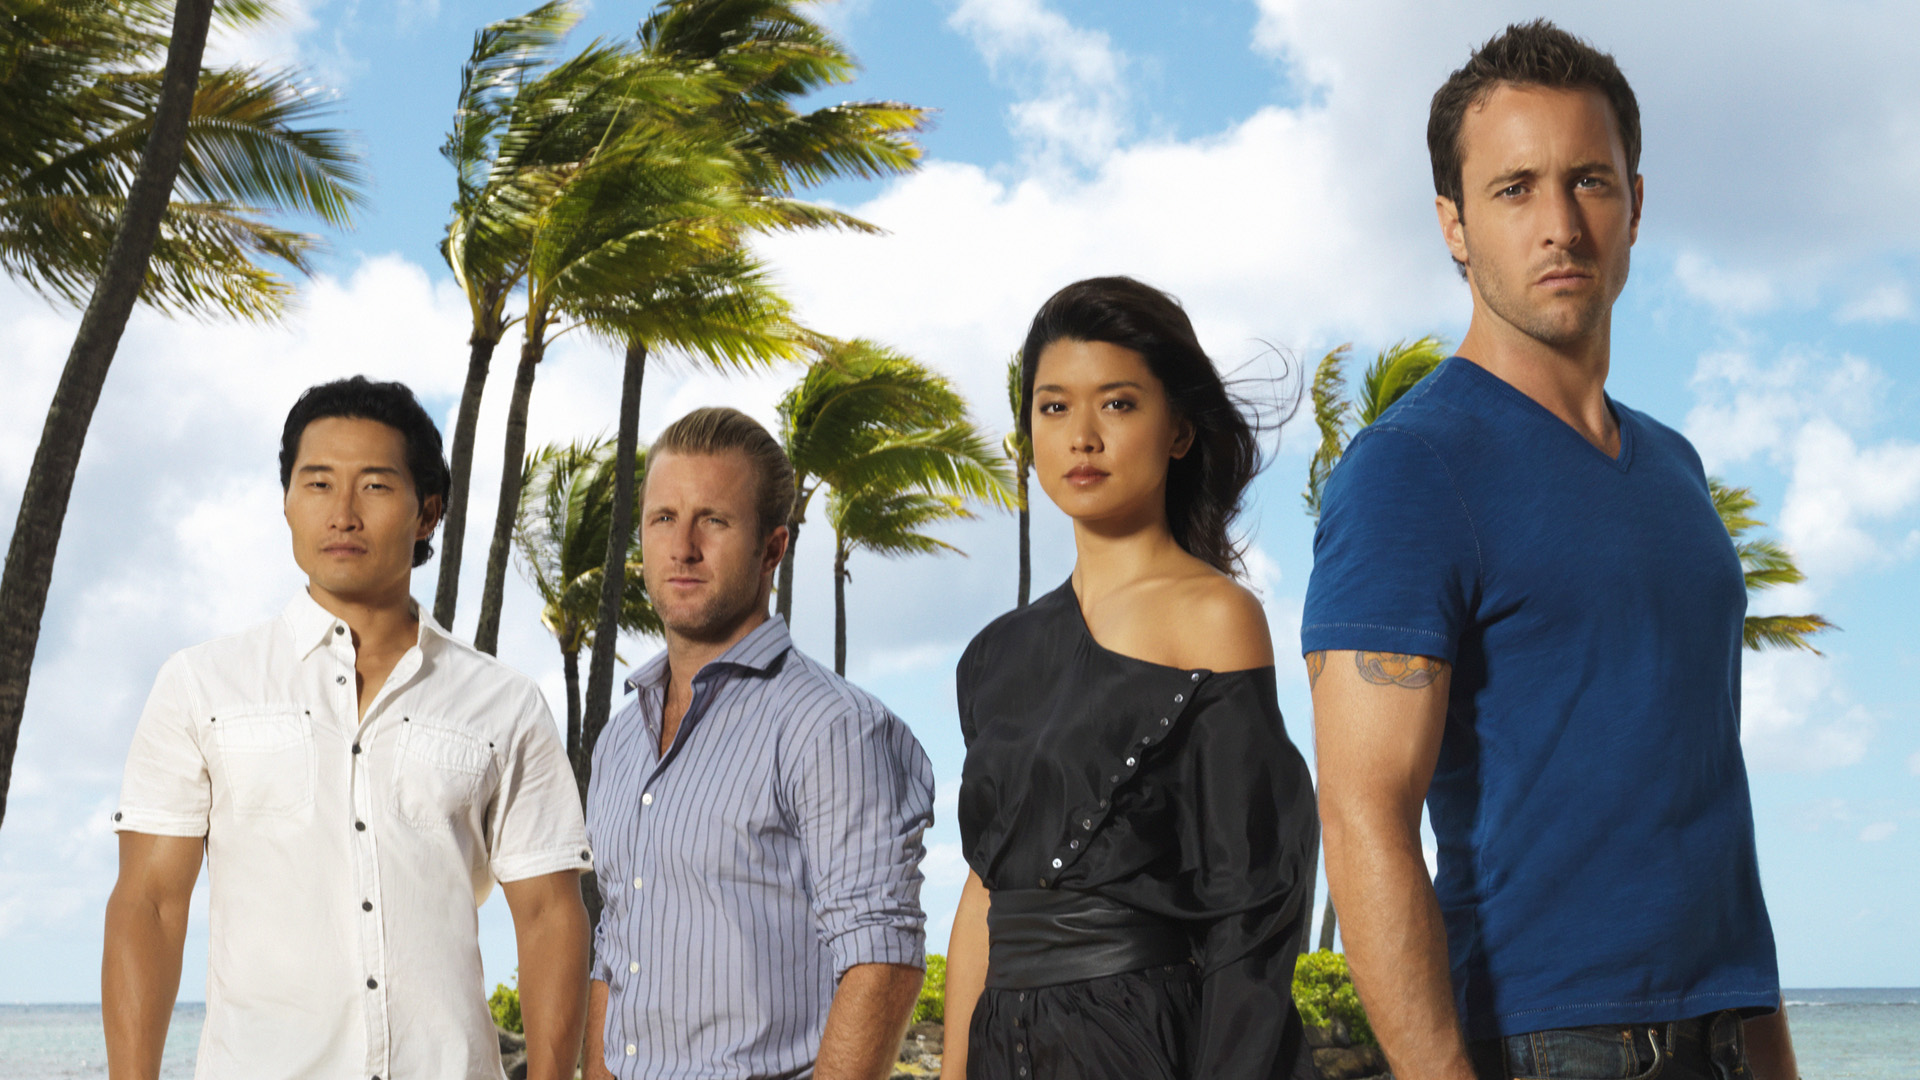 天堂執法者 第6季 第19集 Hawaii Five-O S6 Ep19